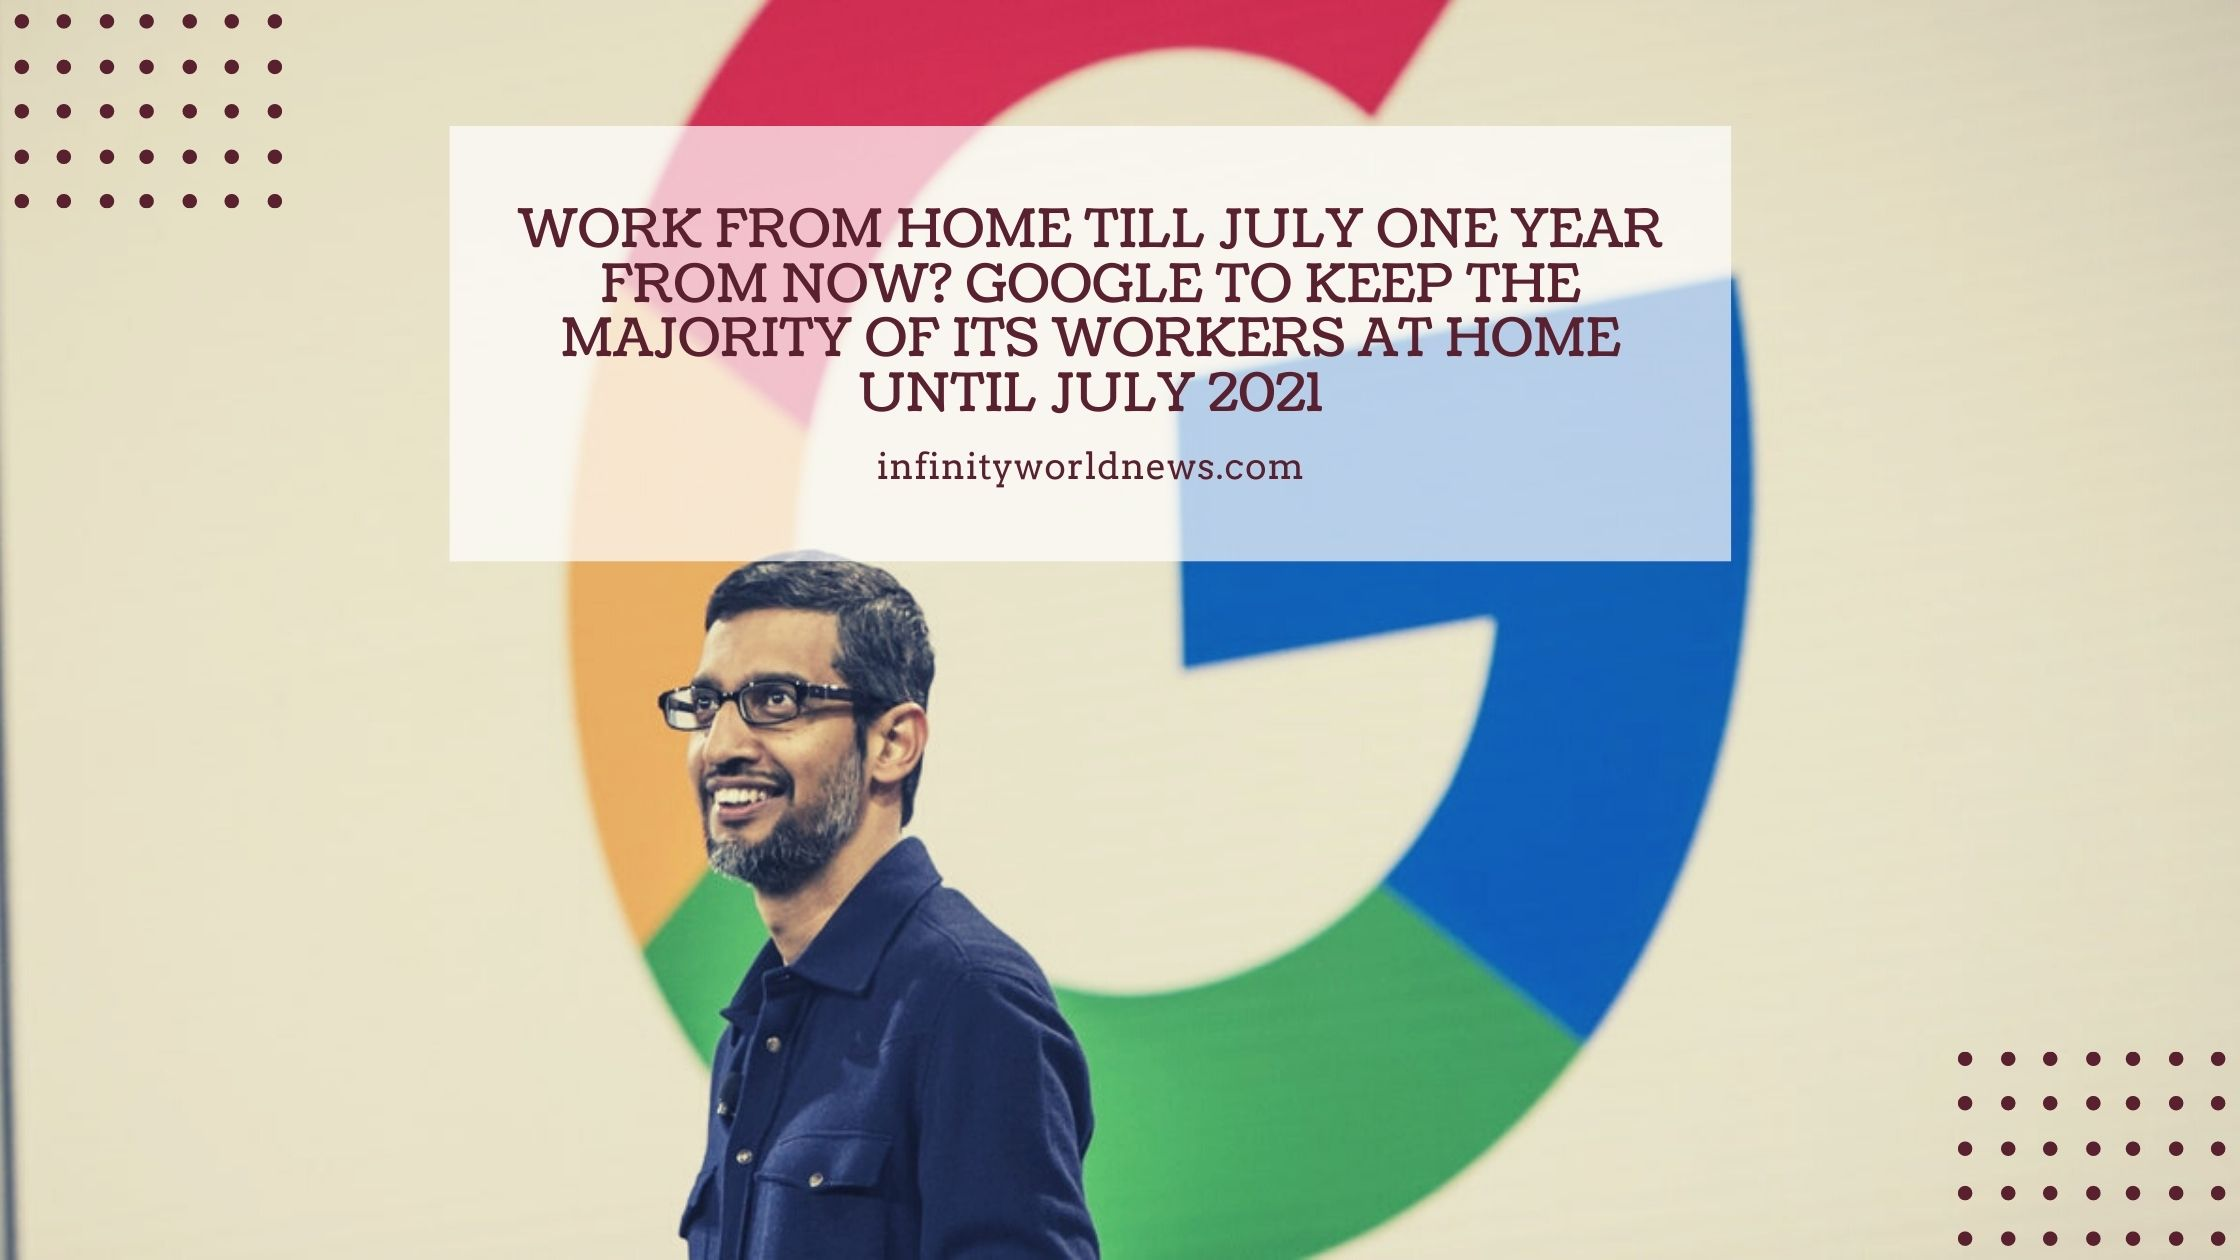 Work from home till July one year from now_